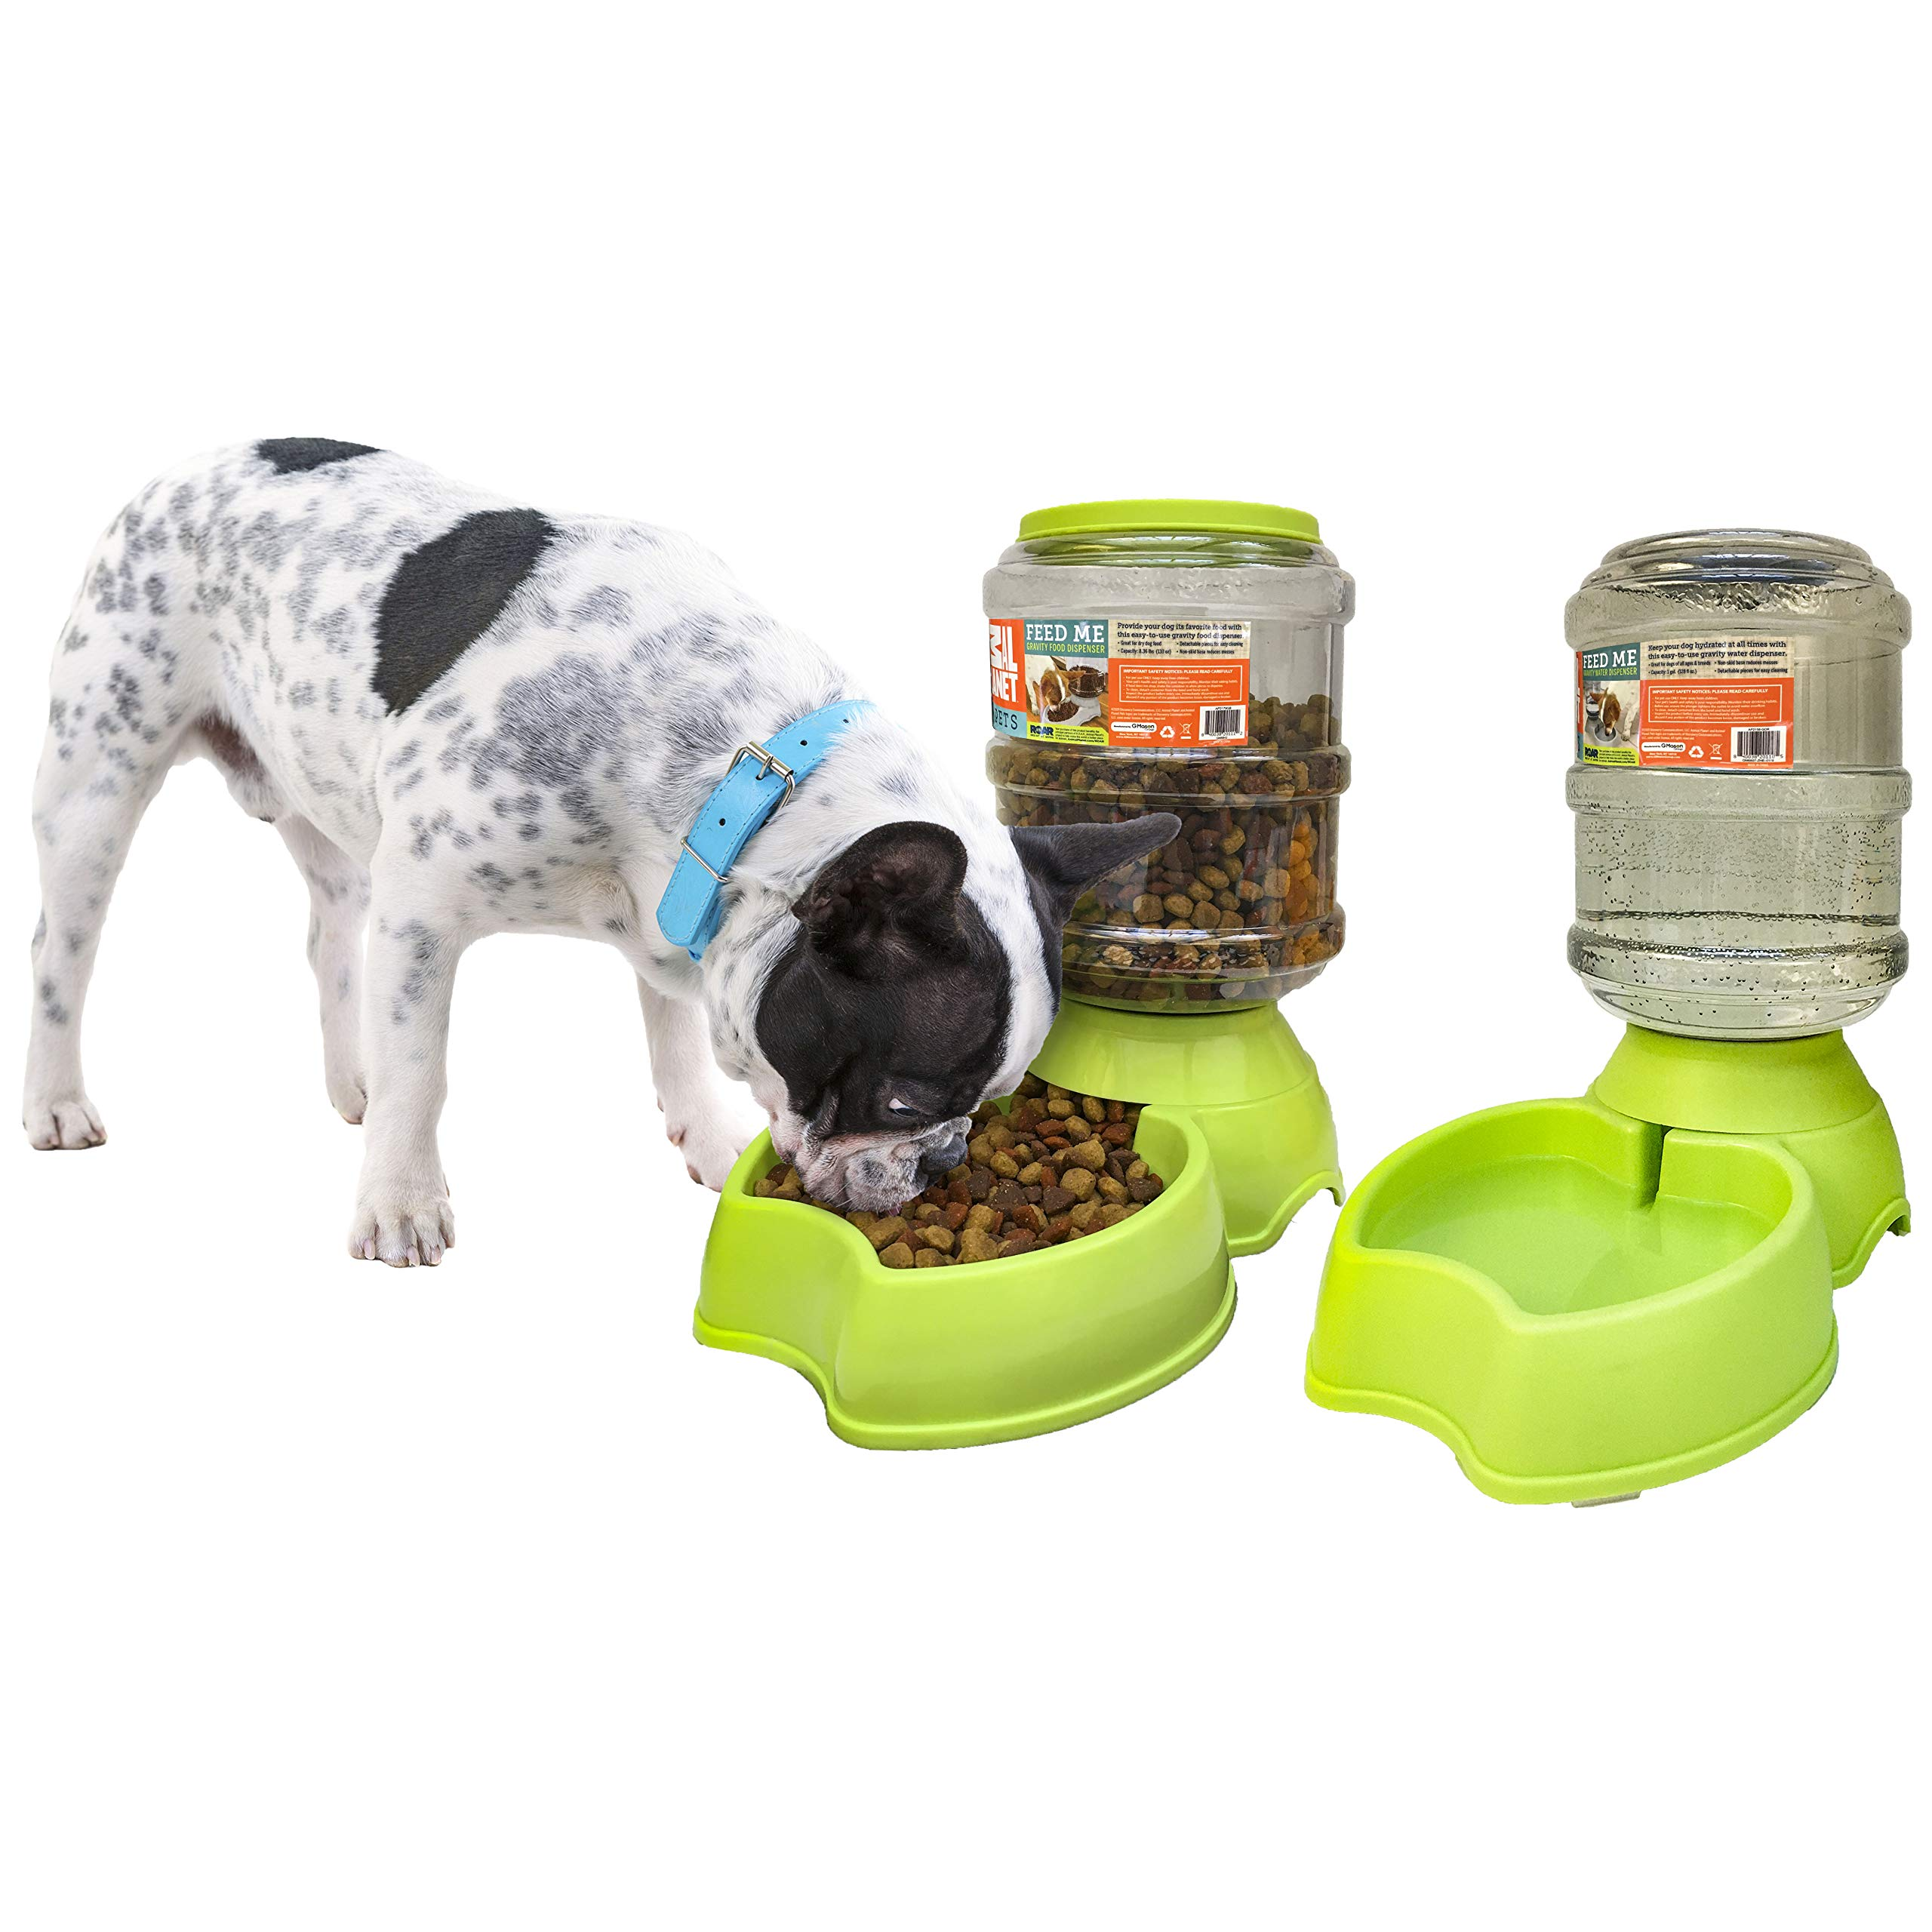 Animal Planet Self-Dispensing Automatic Gravity Pet Dog + Cat Feeder & Waterer Combo Bundle for Dogs & Cats - 2 Pack Value Set (Lime)